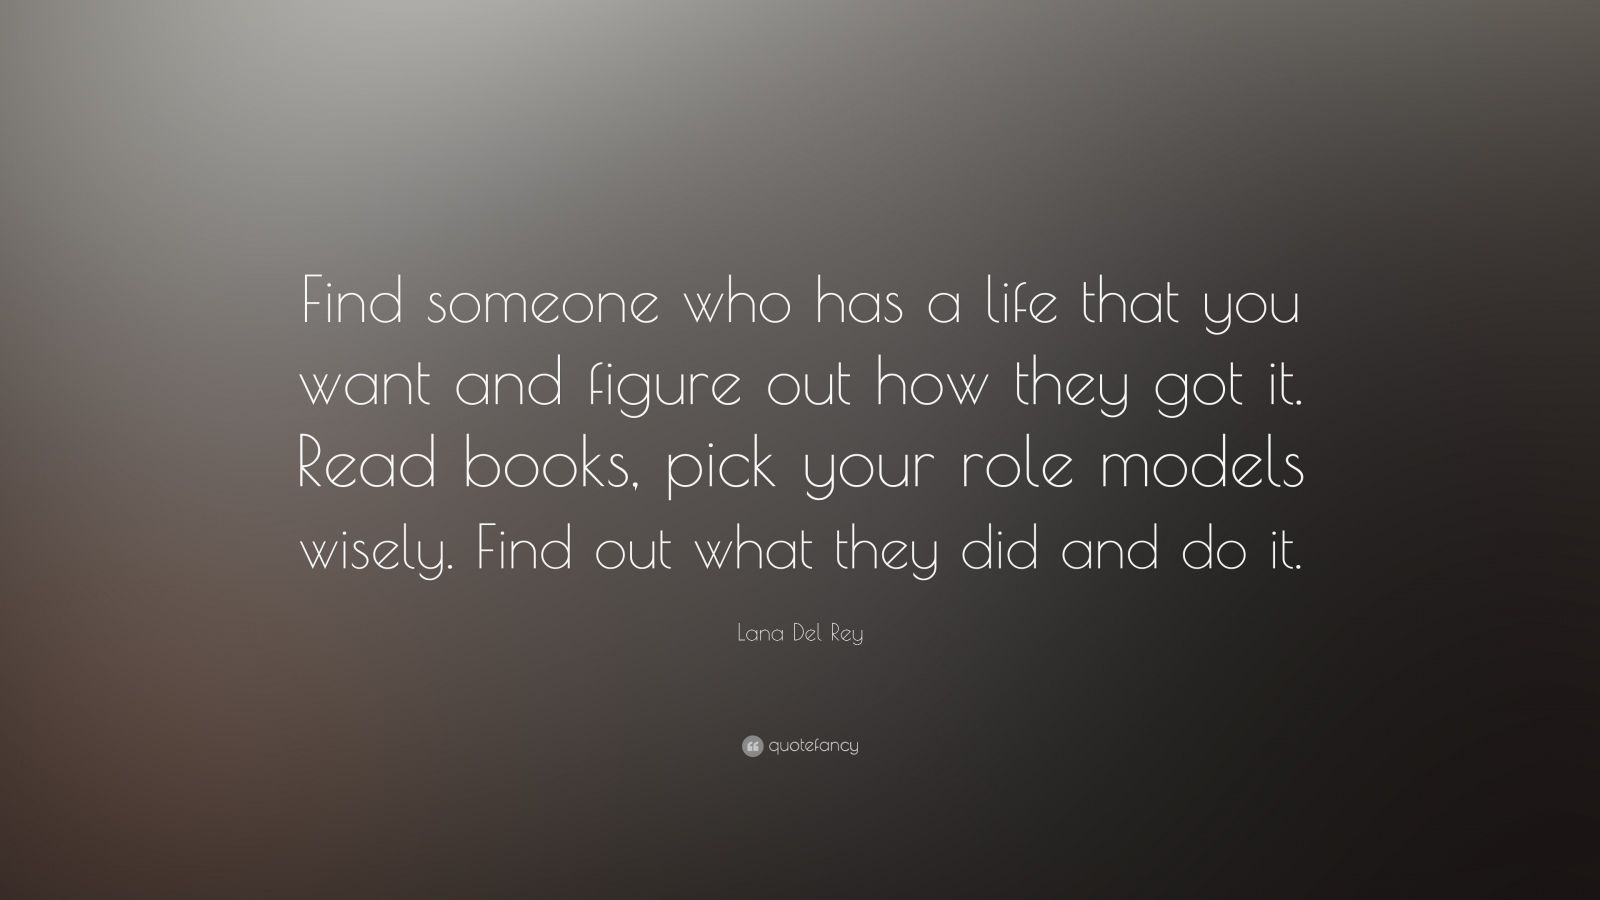 """Lana Del Rey Quote: """"Find someone who has a life that you want and figure out how they got it. Read books, pick your role models wisely. Find out what they did and do it."""""""